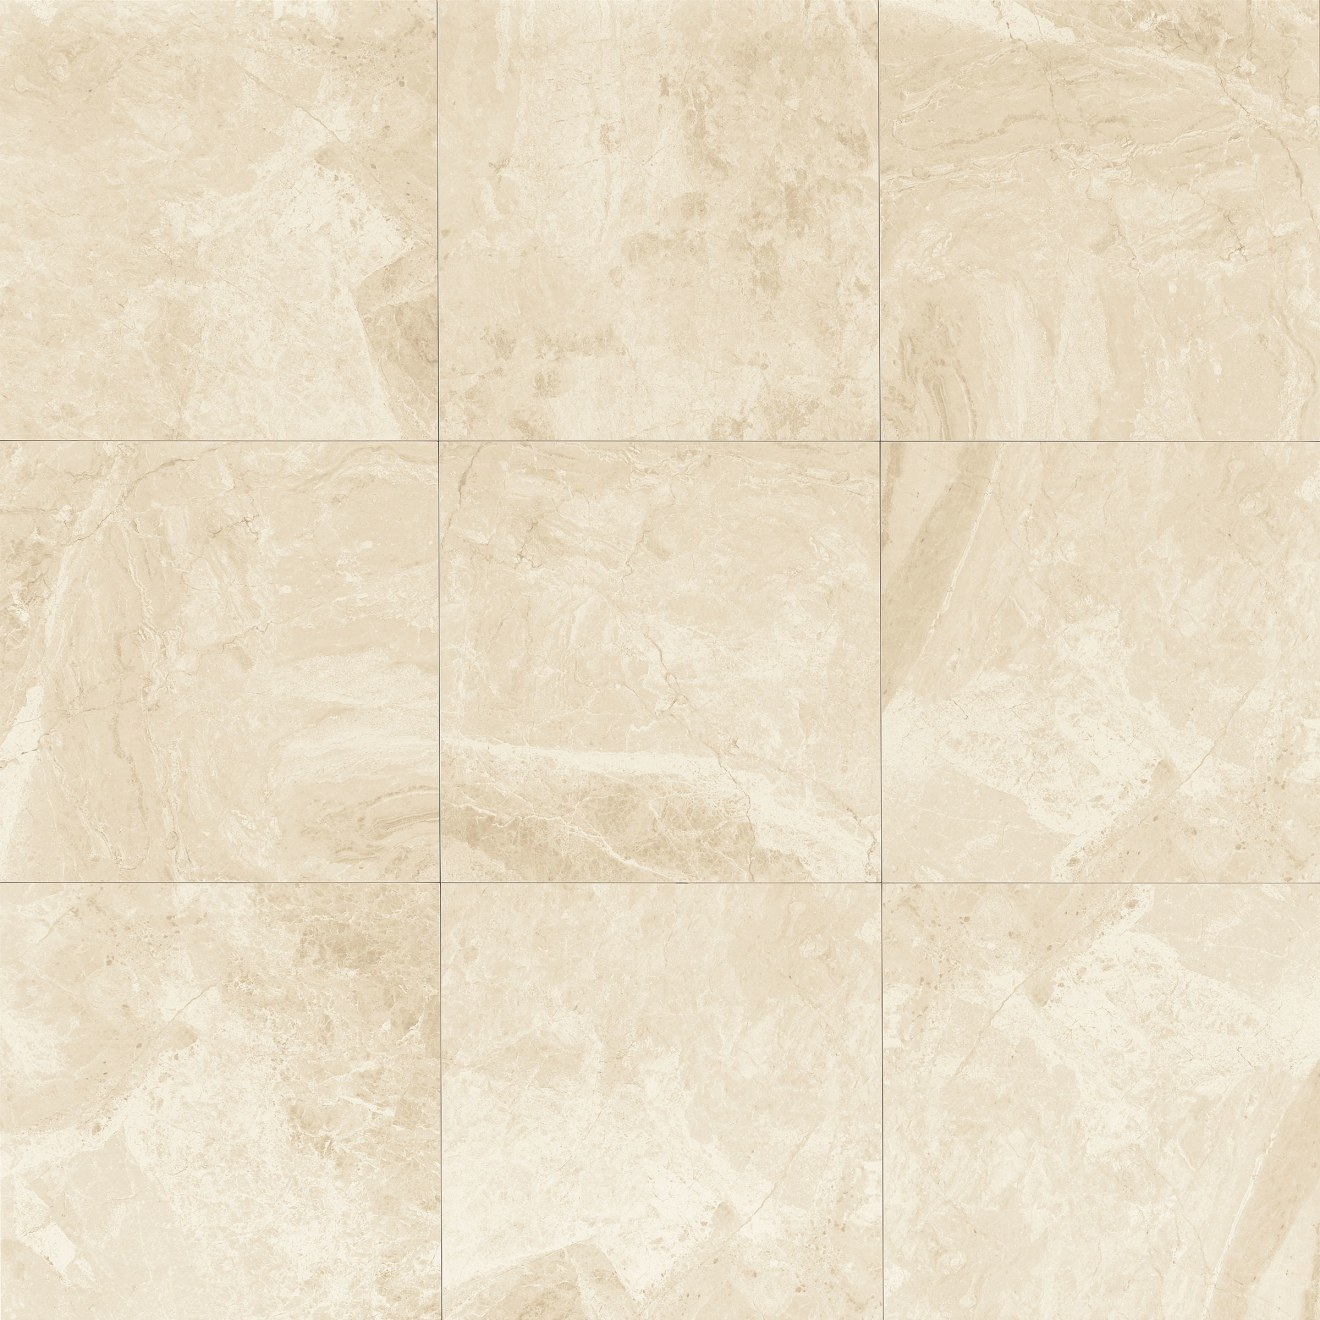 18x18 Floor Tile Patterns Image Collections Modern Flooring